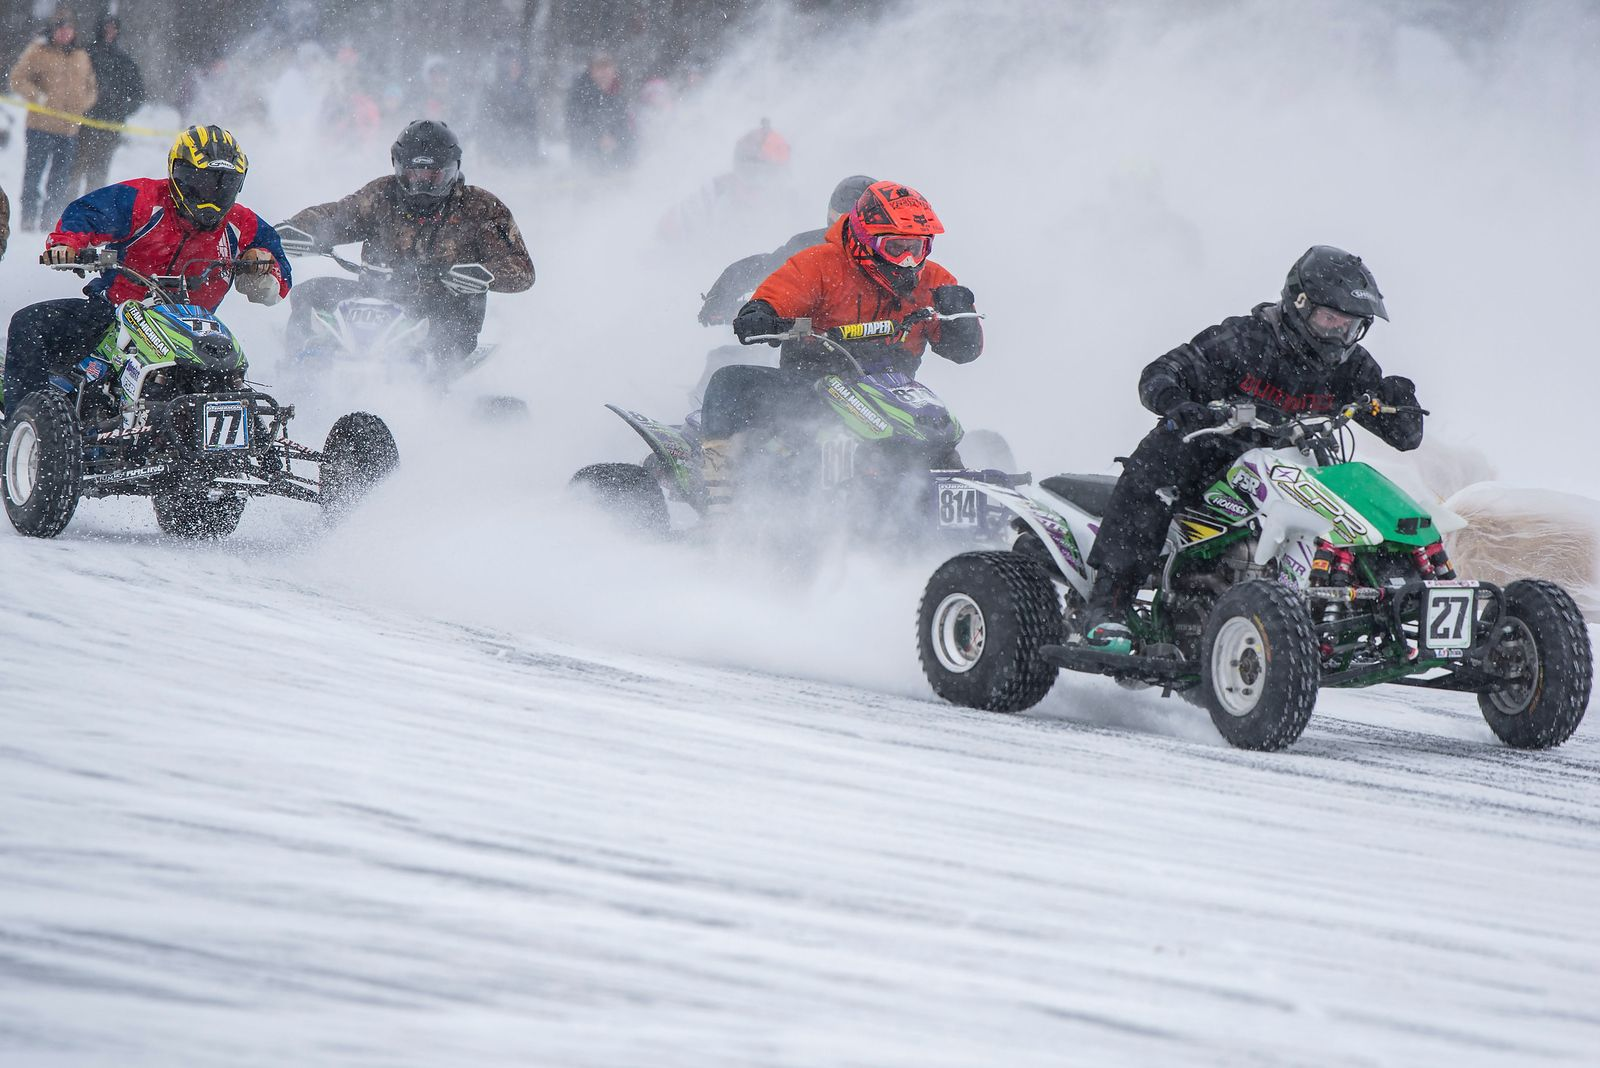 2020 Ama Atv Ice Race Grand Championship Takes Place Feb 16 In